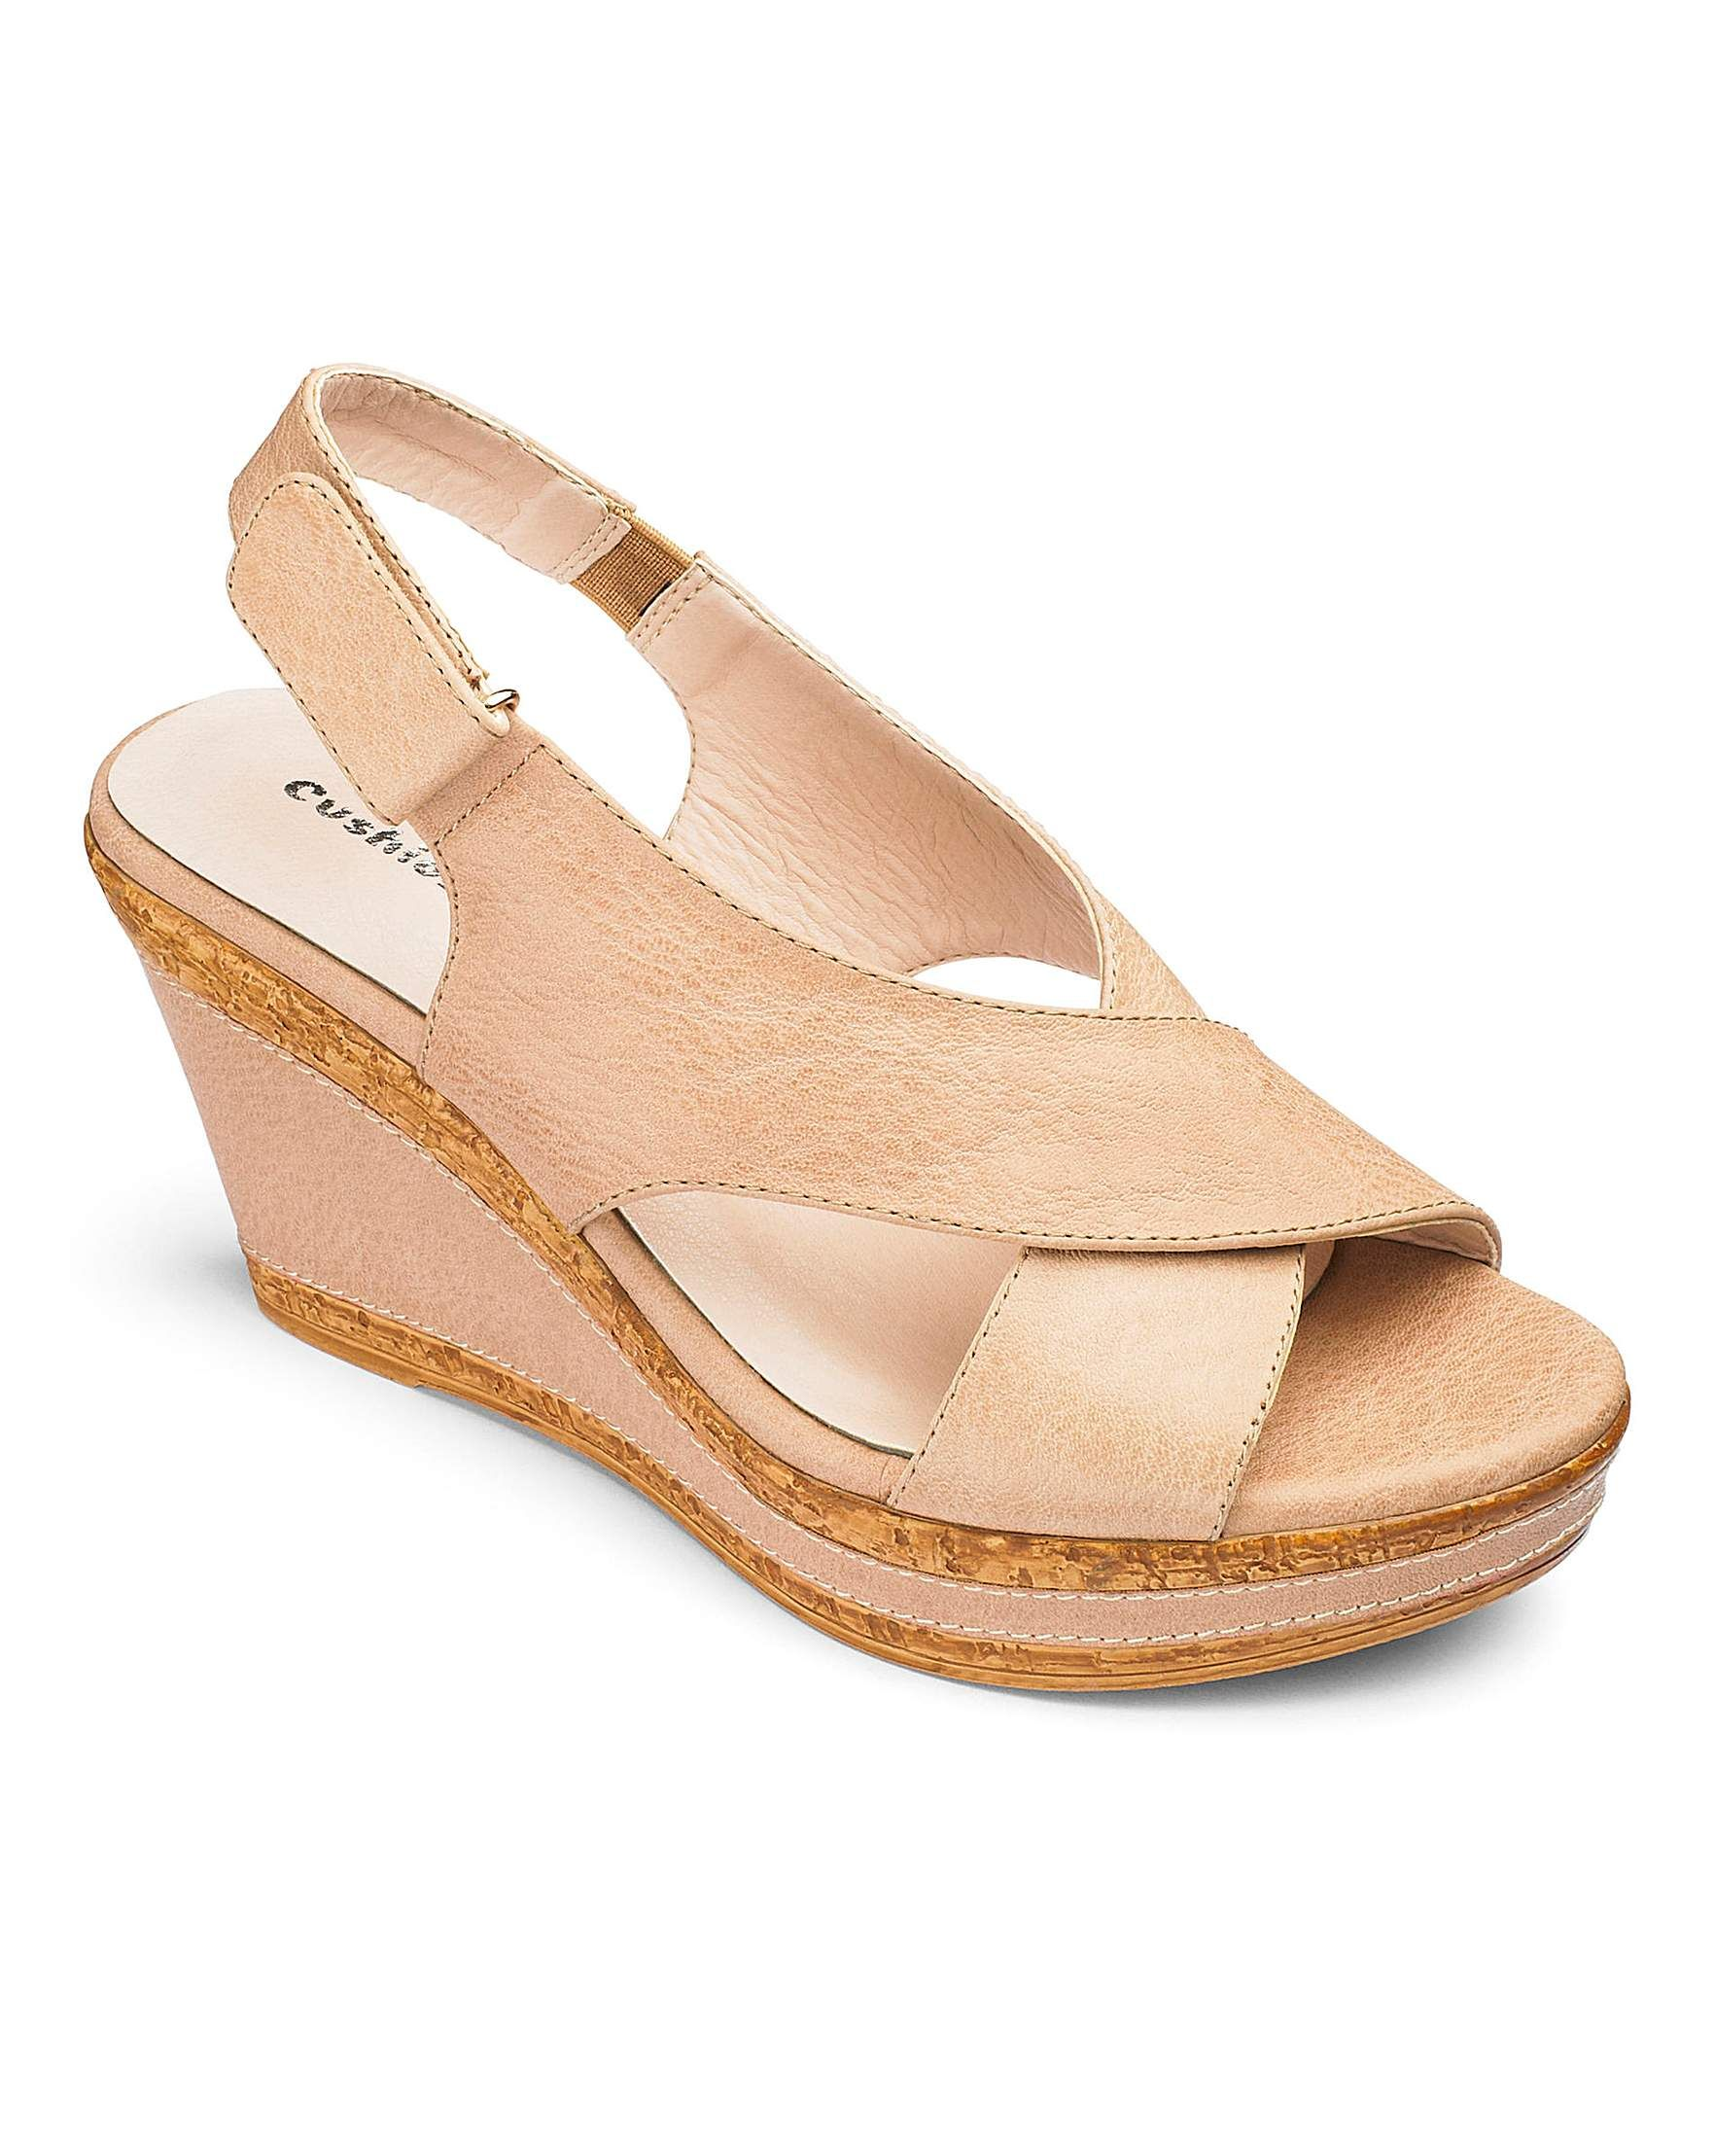 33842eadfdc Cushion Walk Wedge Sandals E Fit | Simply Be | Fashion Steps: Shoes ...